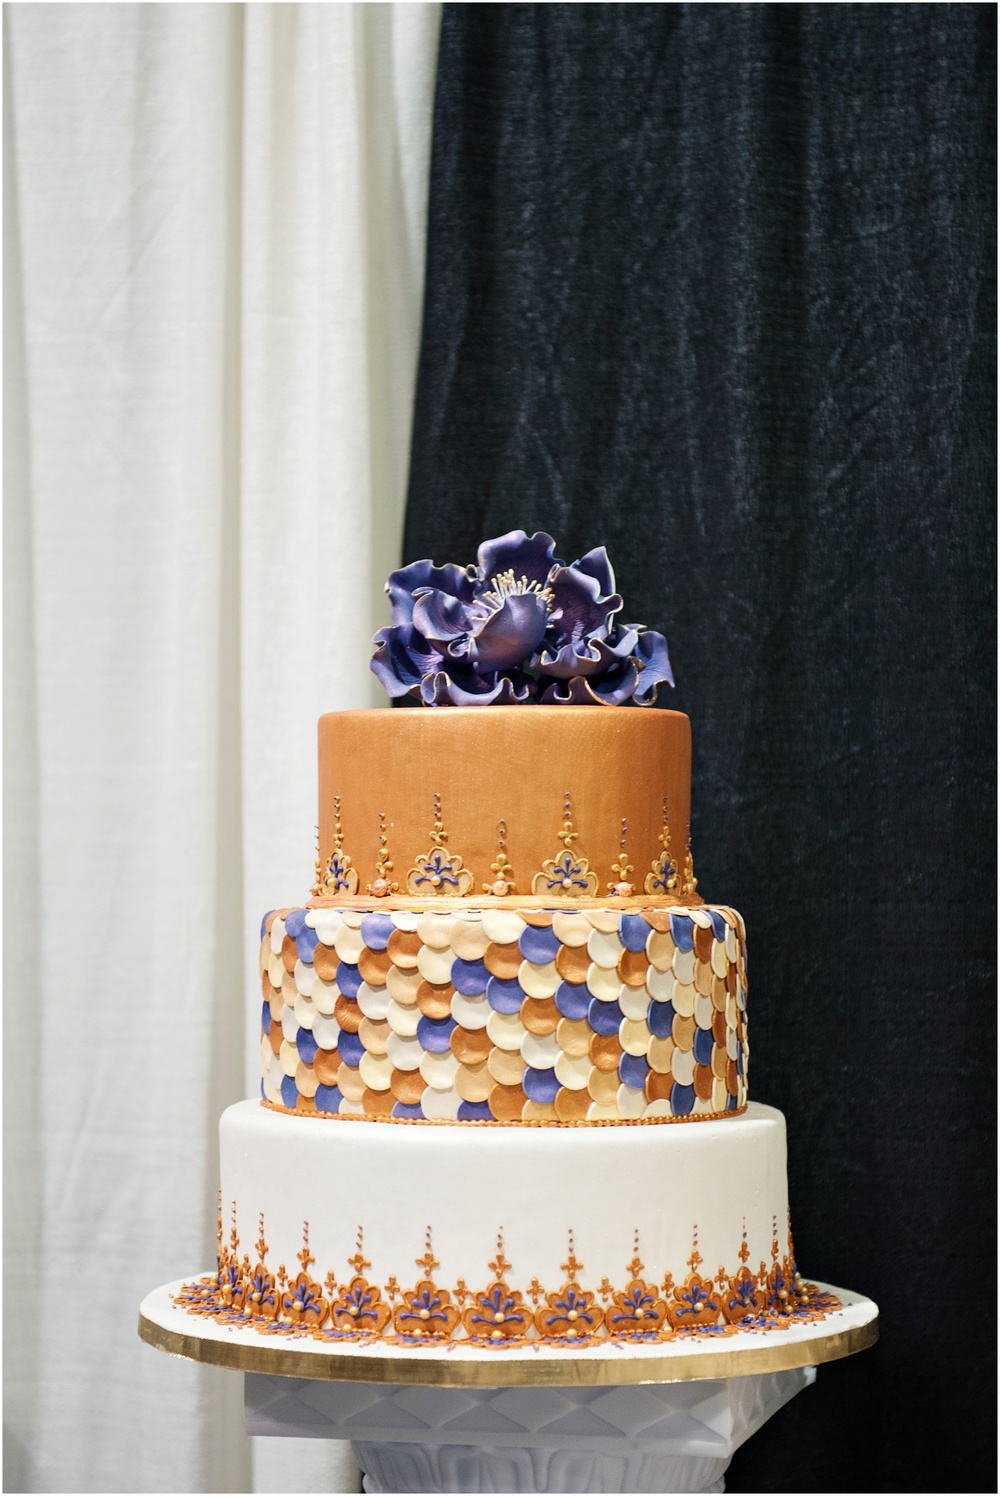 This cake was my favorite to look at. GORGEOUS!